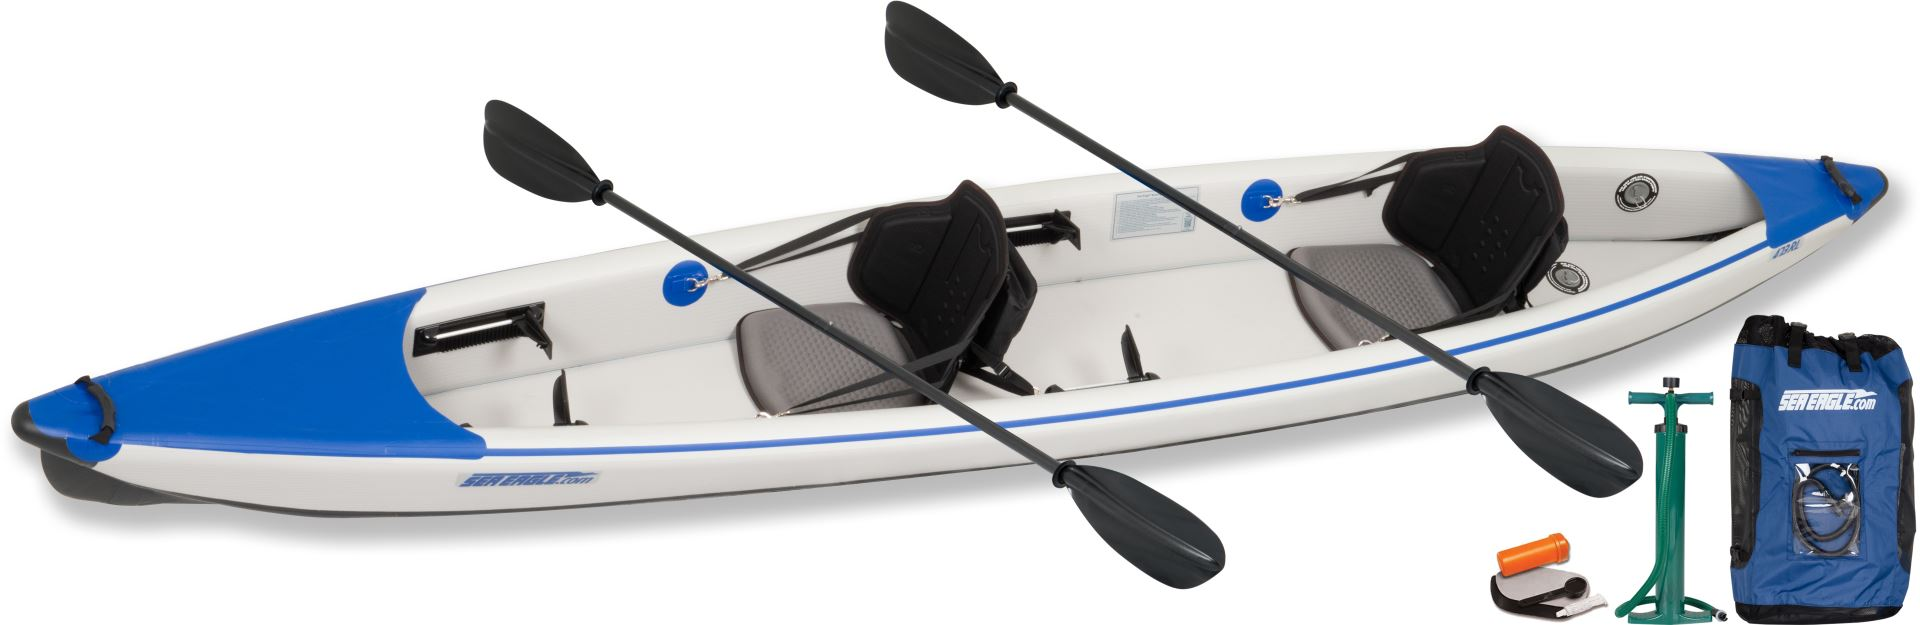 The New Sea Eagle 393RL & 473RL  RazorLite  Inflatable Kayaks and  TC16 Canoes perform like a hard body boat.